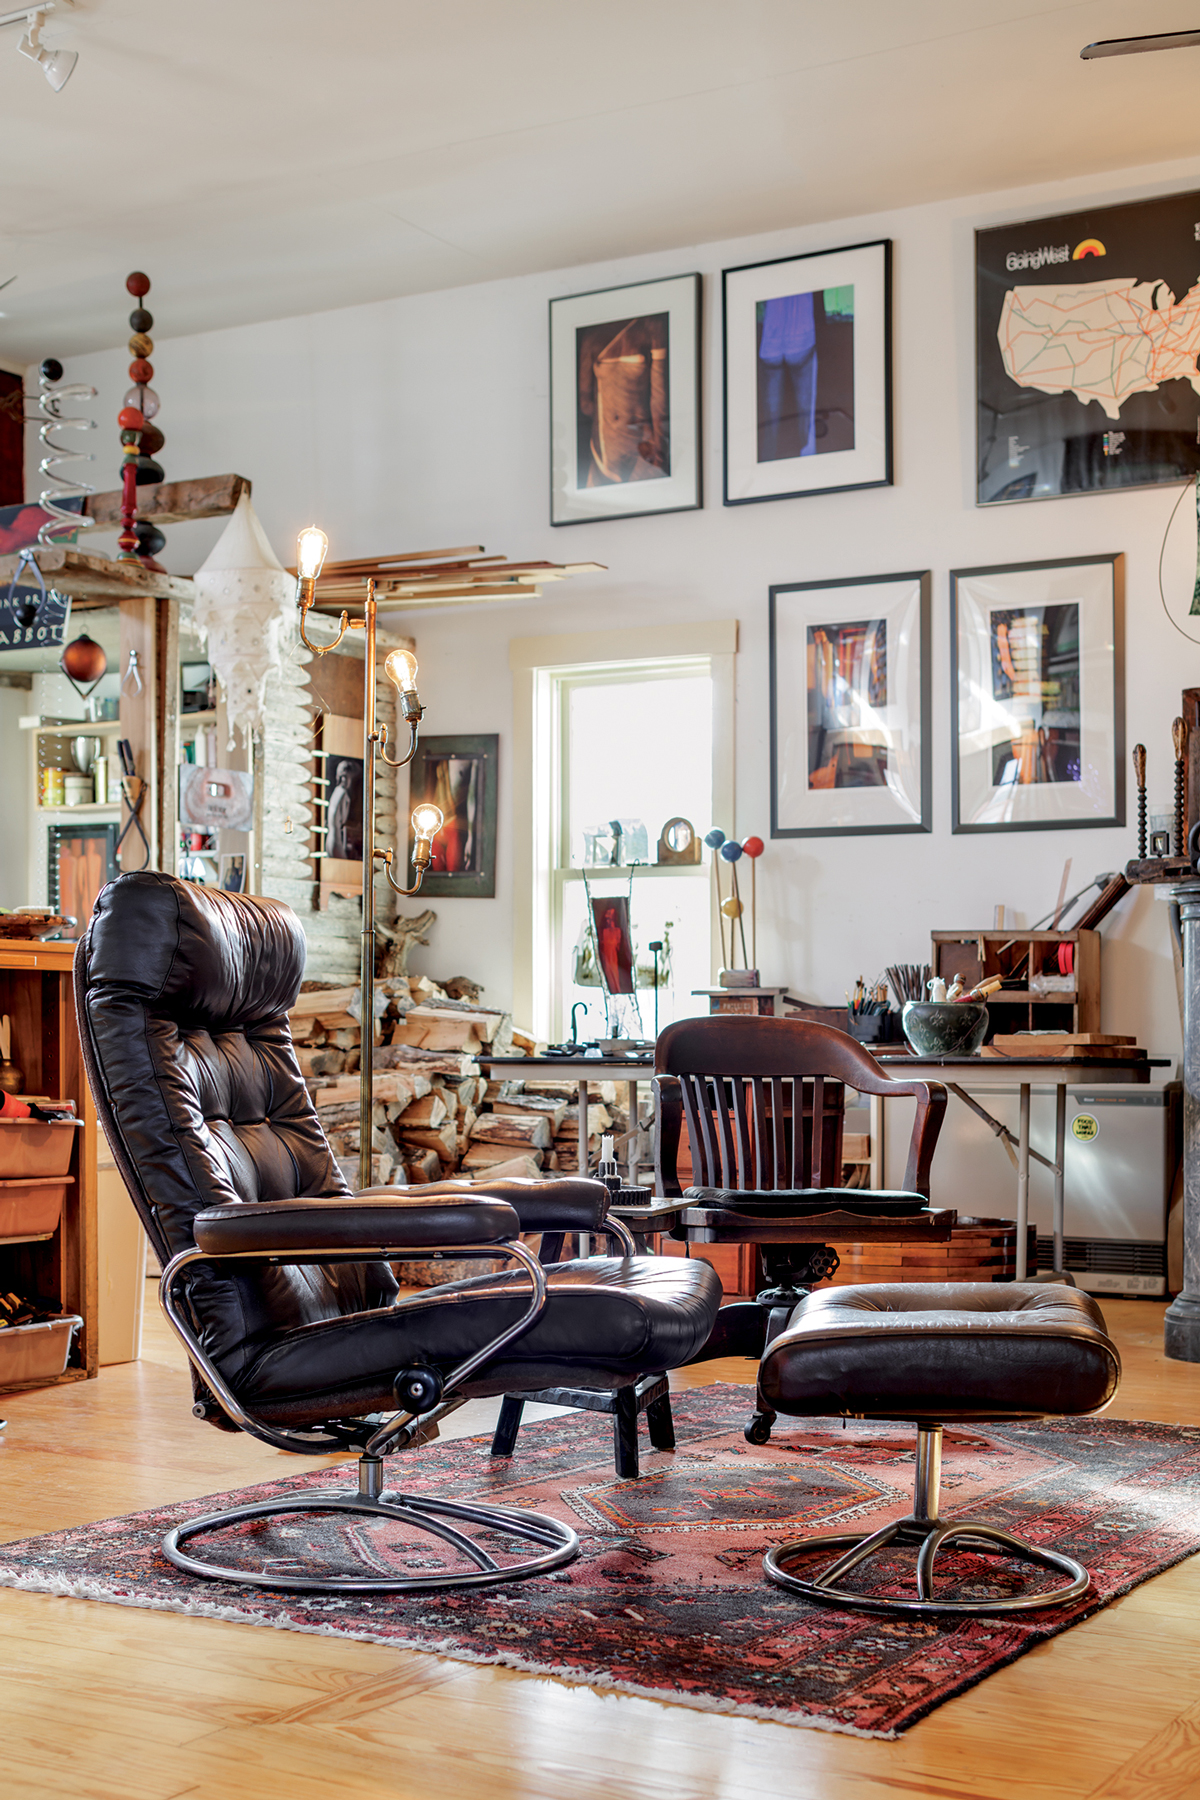 Maine Home, Cabinet of Curiosities